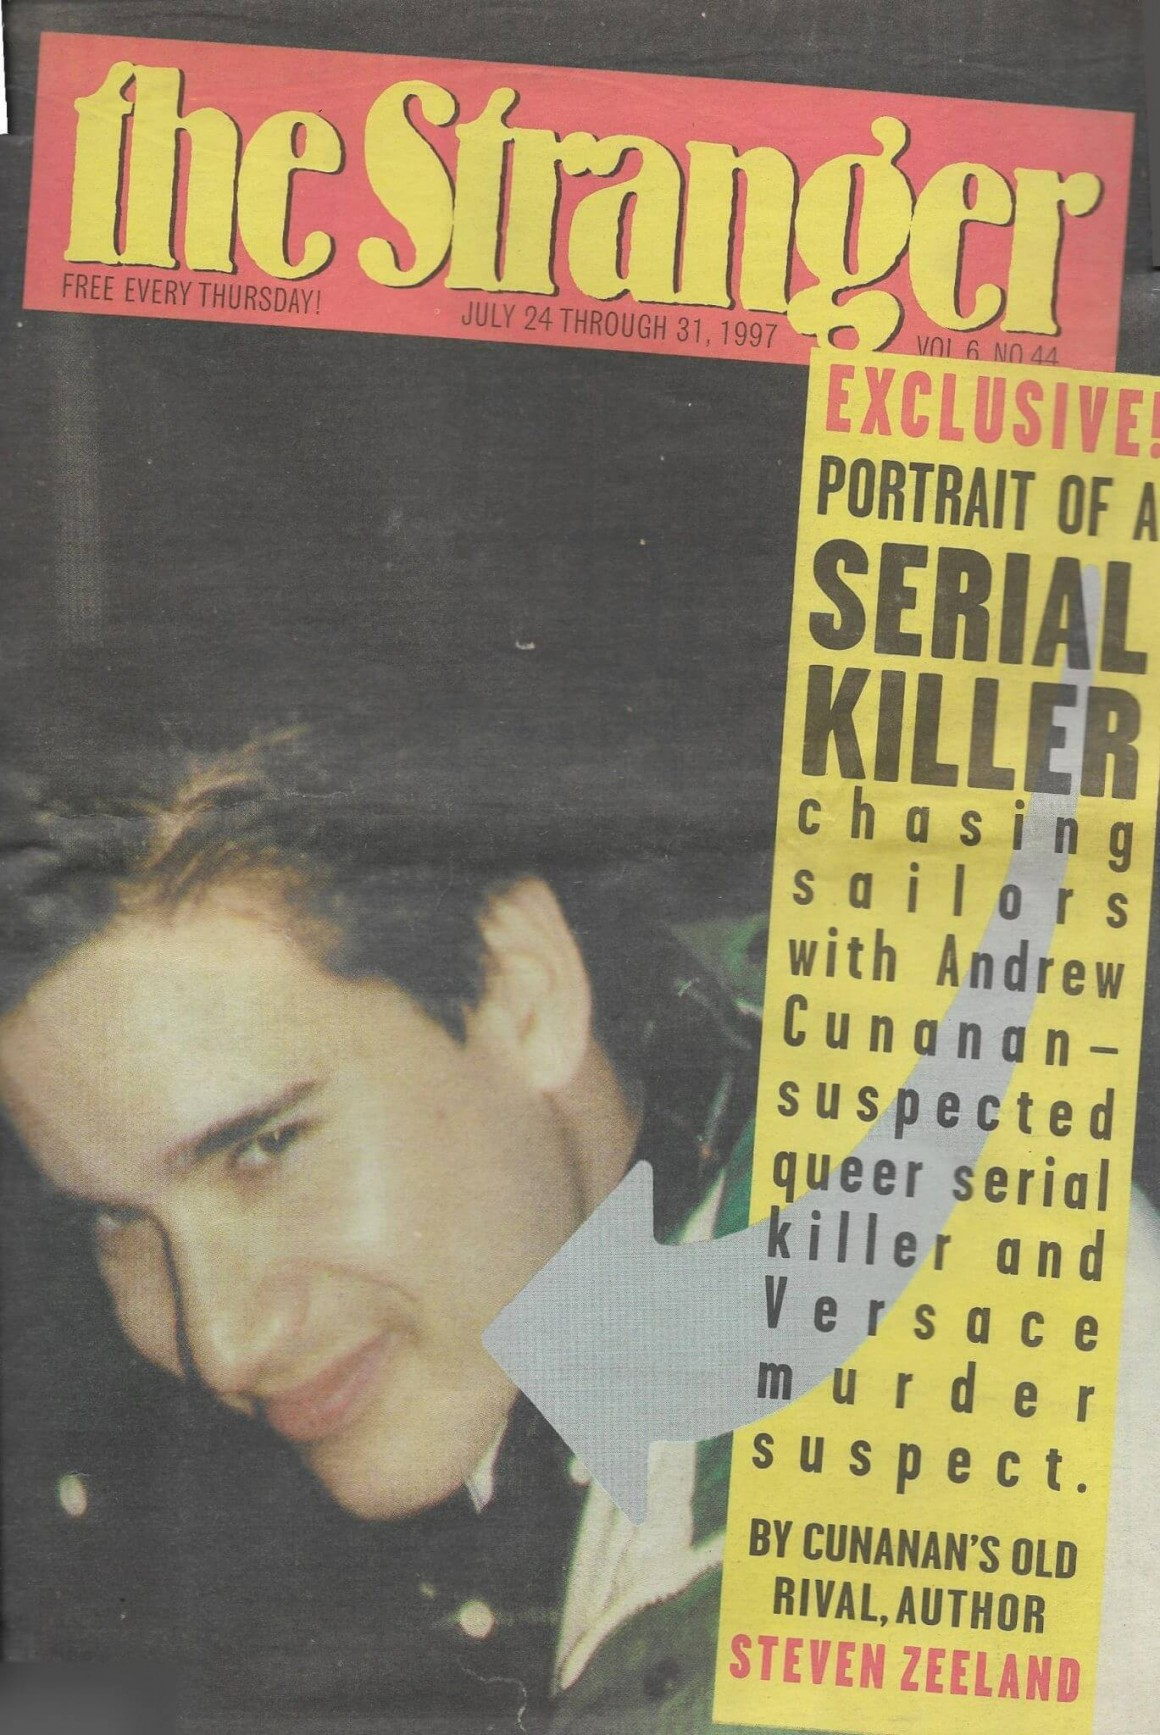 Exclusive! Portrait of a Serial Killer - cover story by Steven Zeeland published in The Stranger, July 24-31, 1997